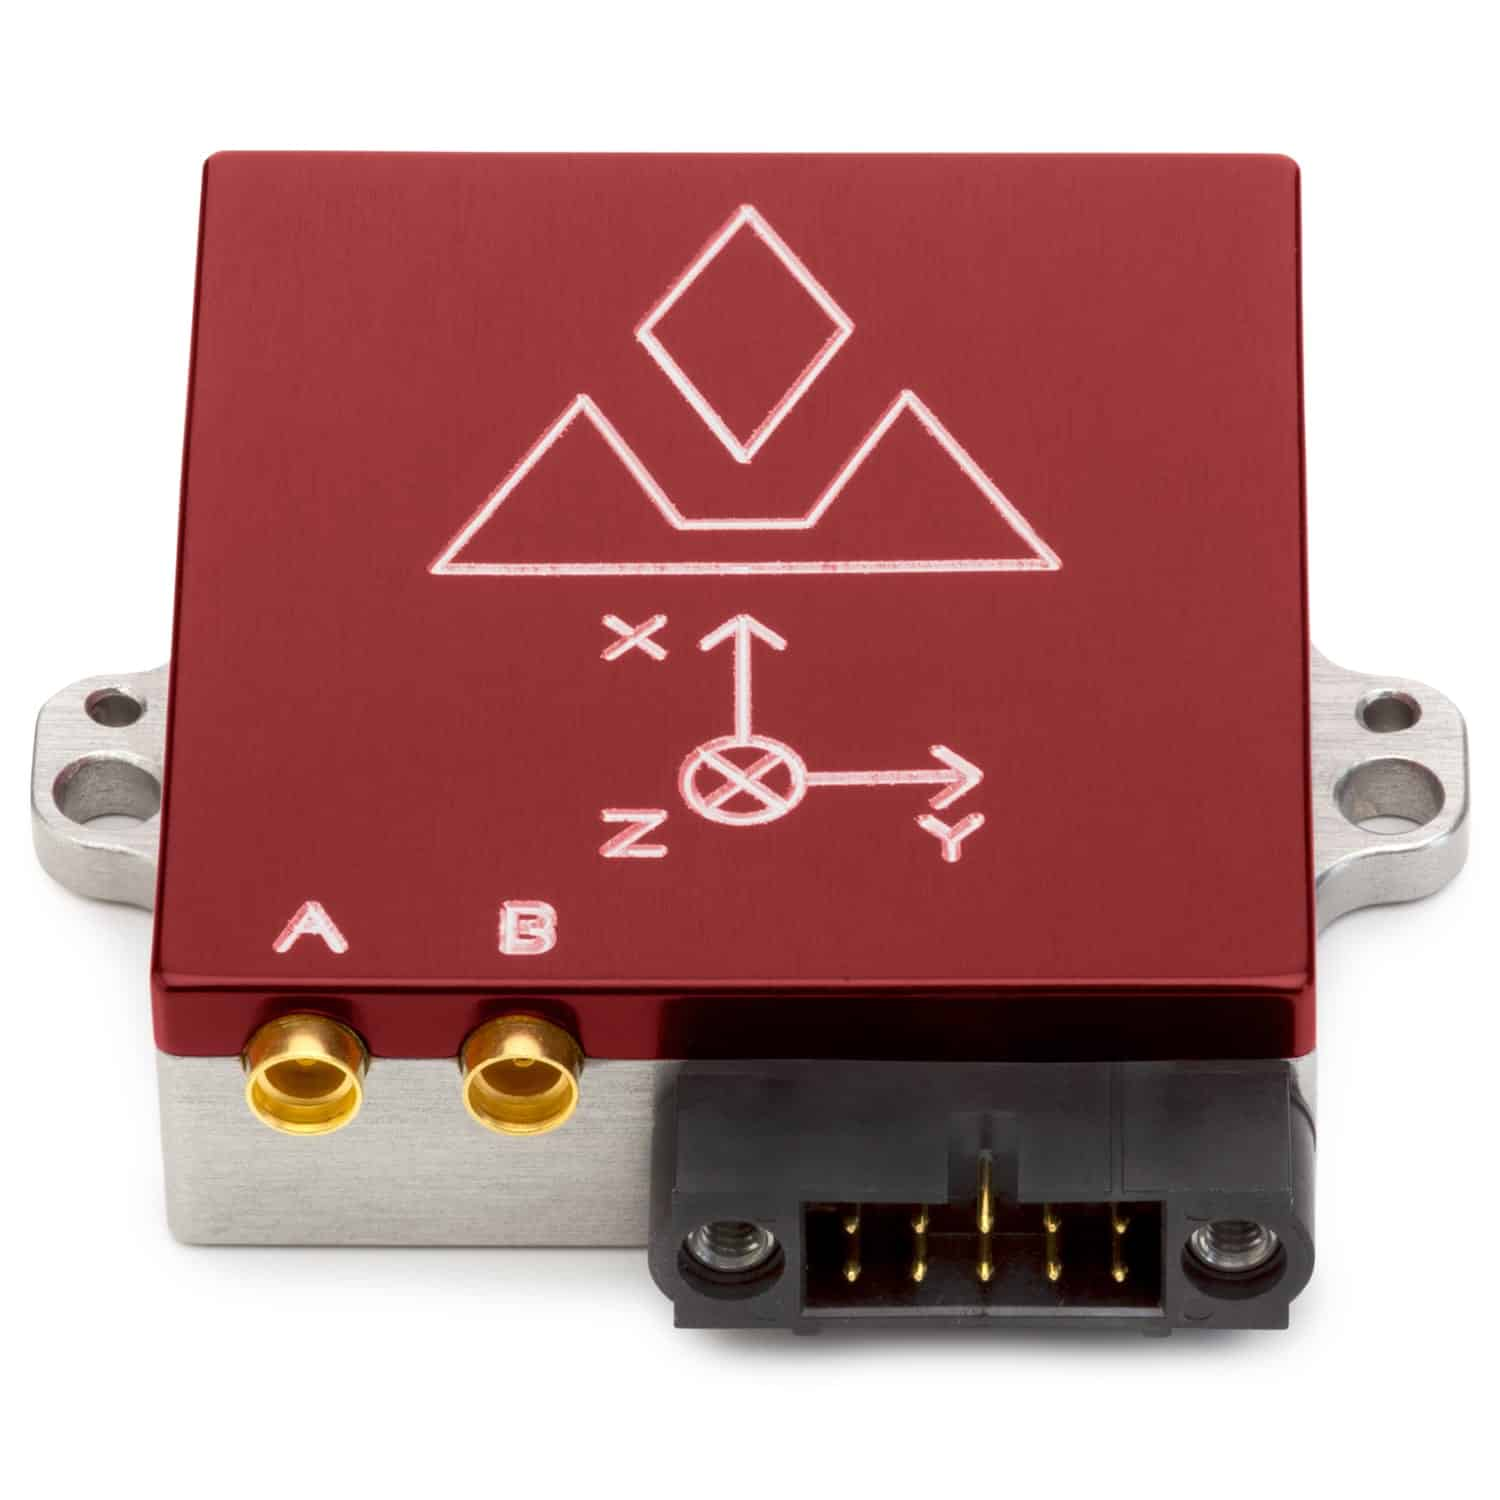 Inertial Navigation Systems Ins For Drones Uav